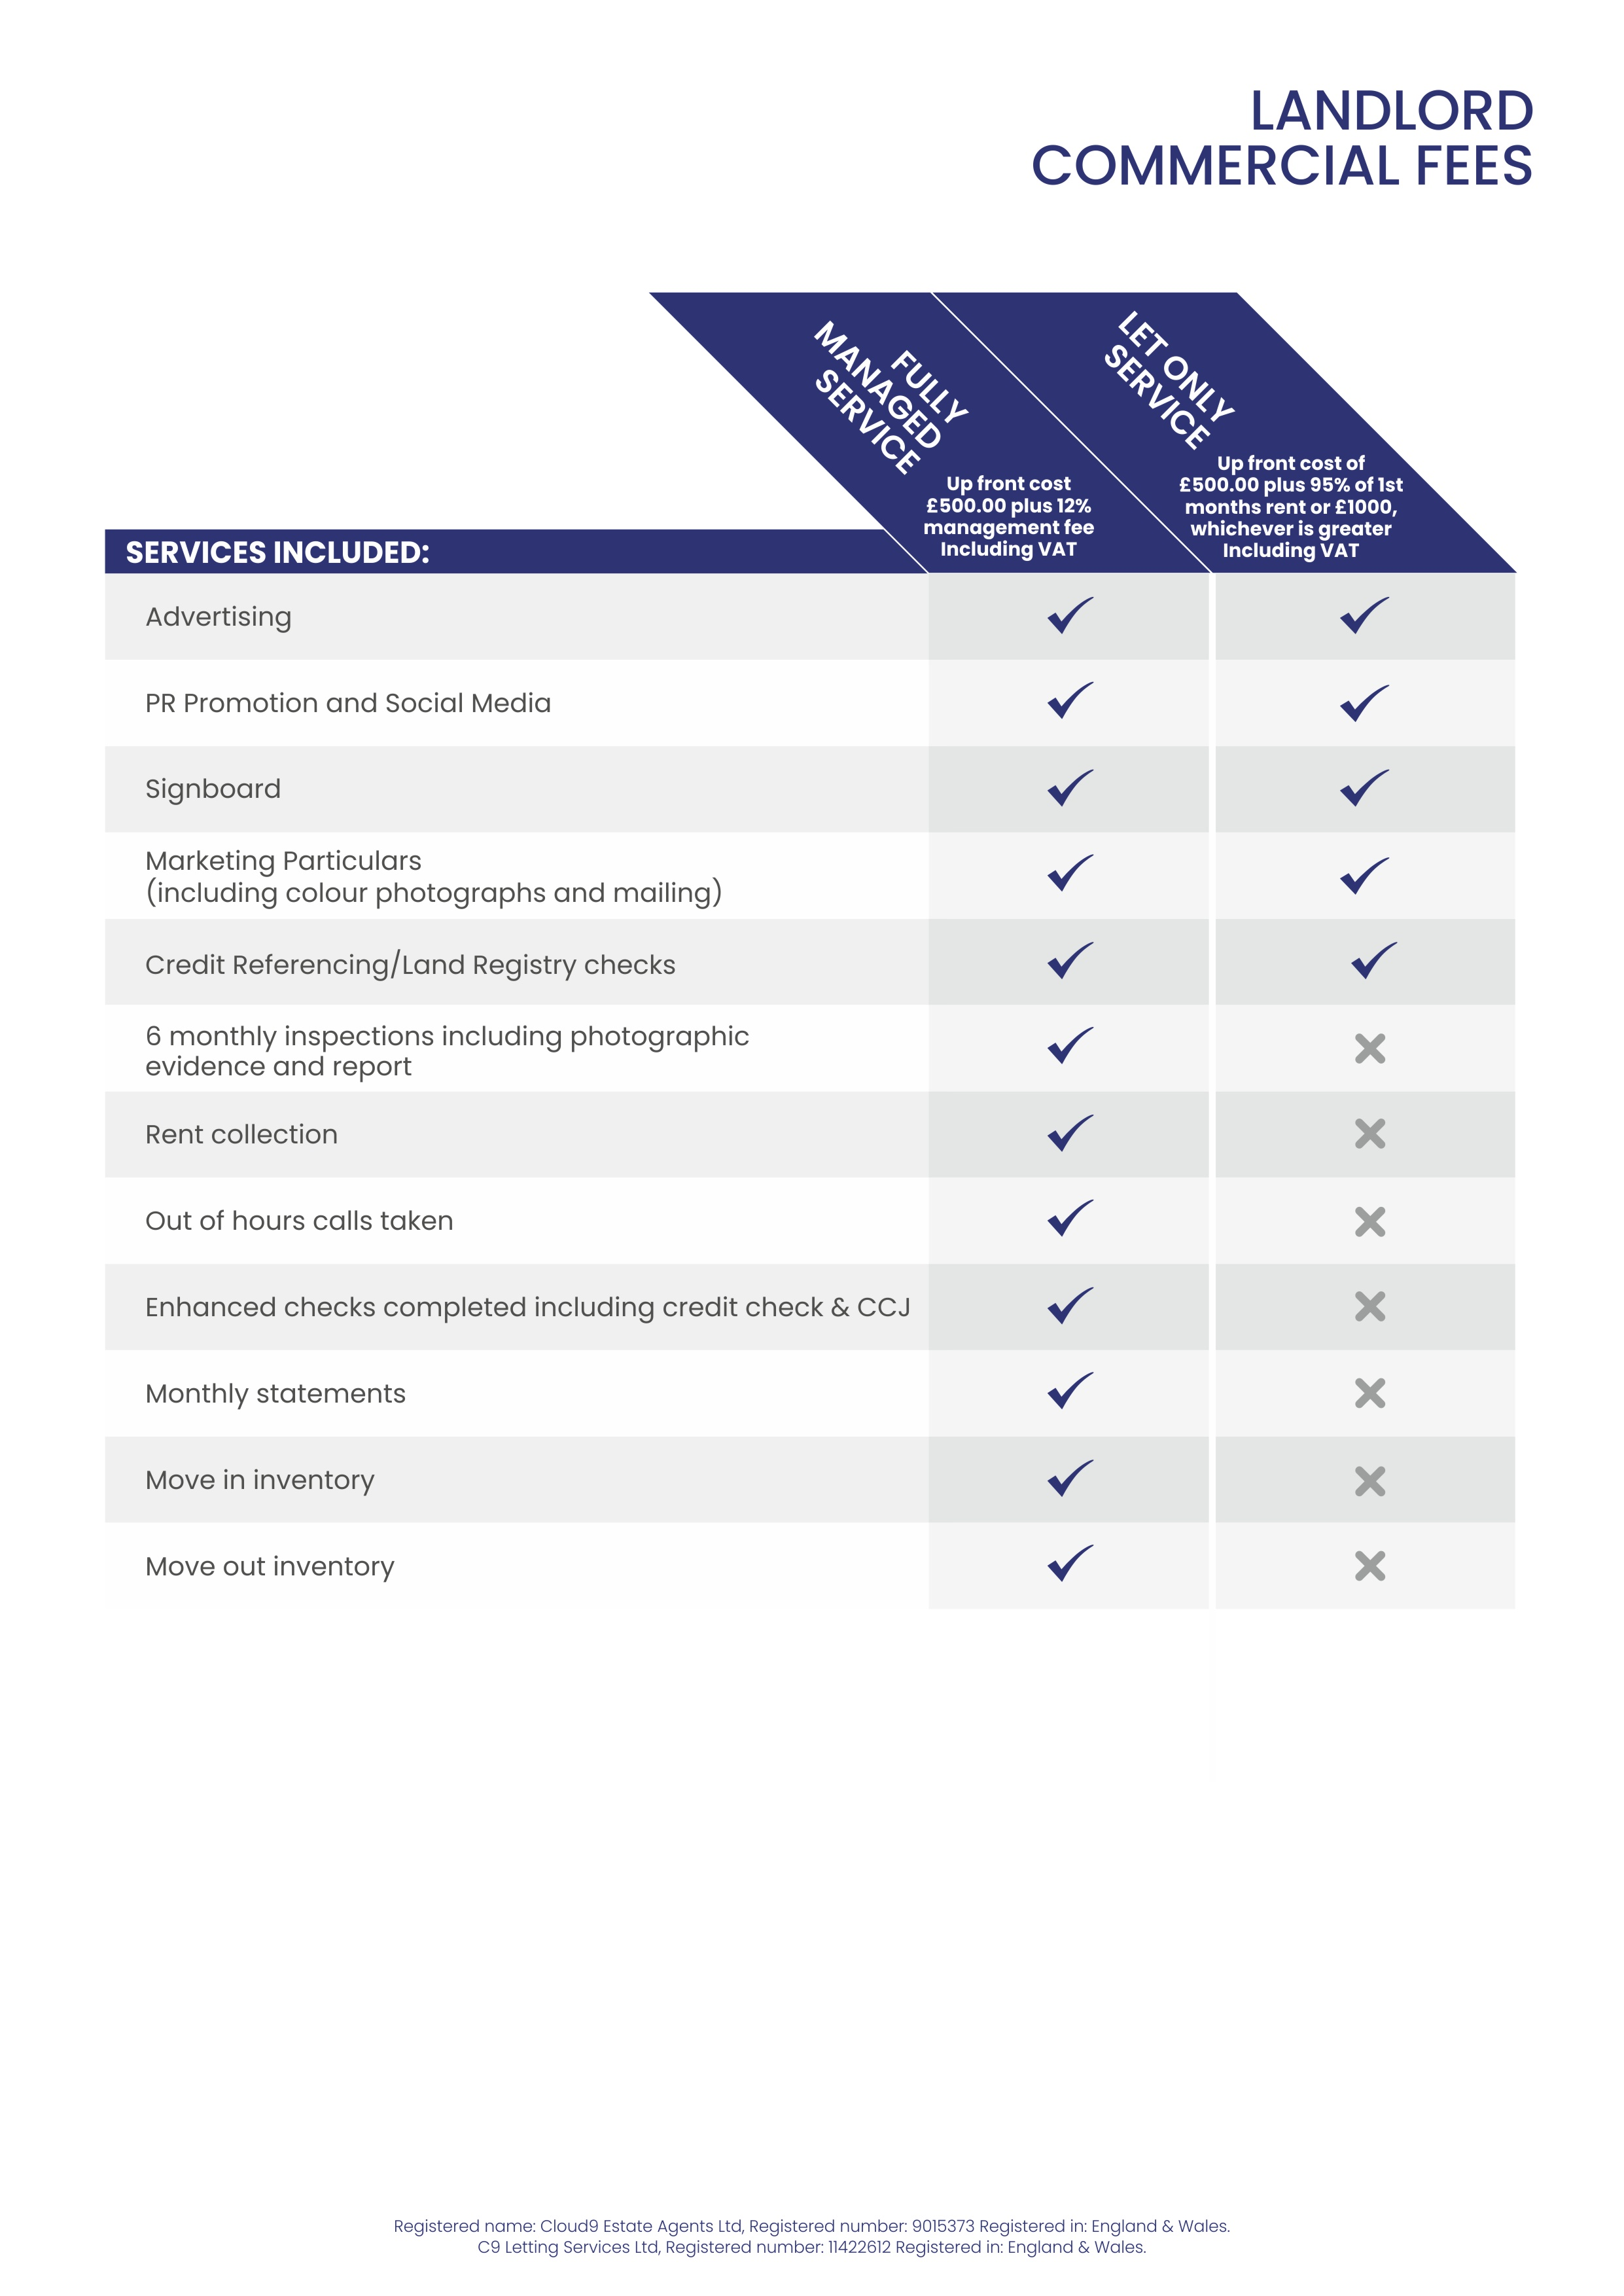 Landlord Commercial Fees Table